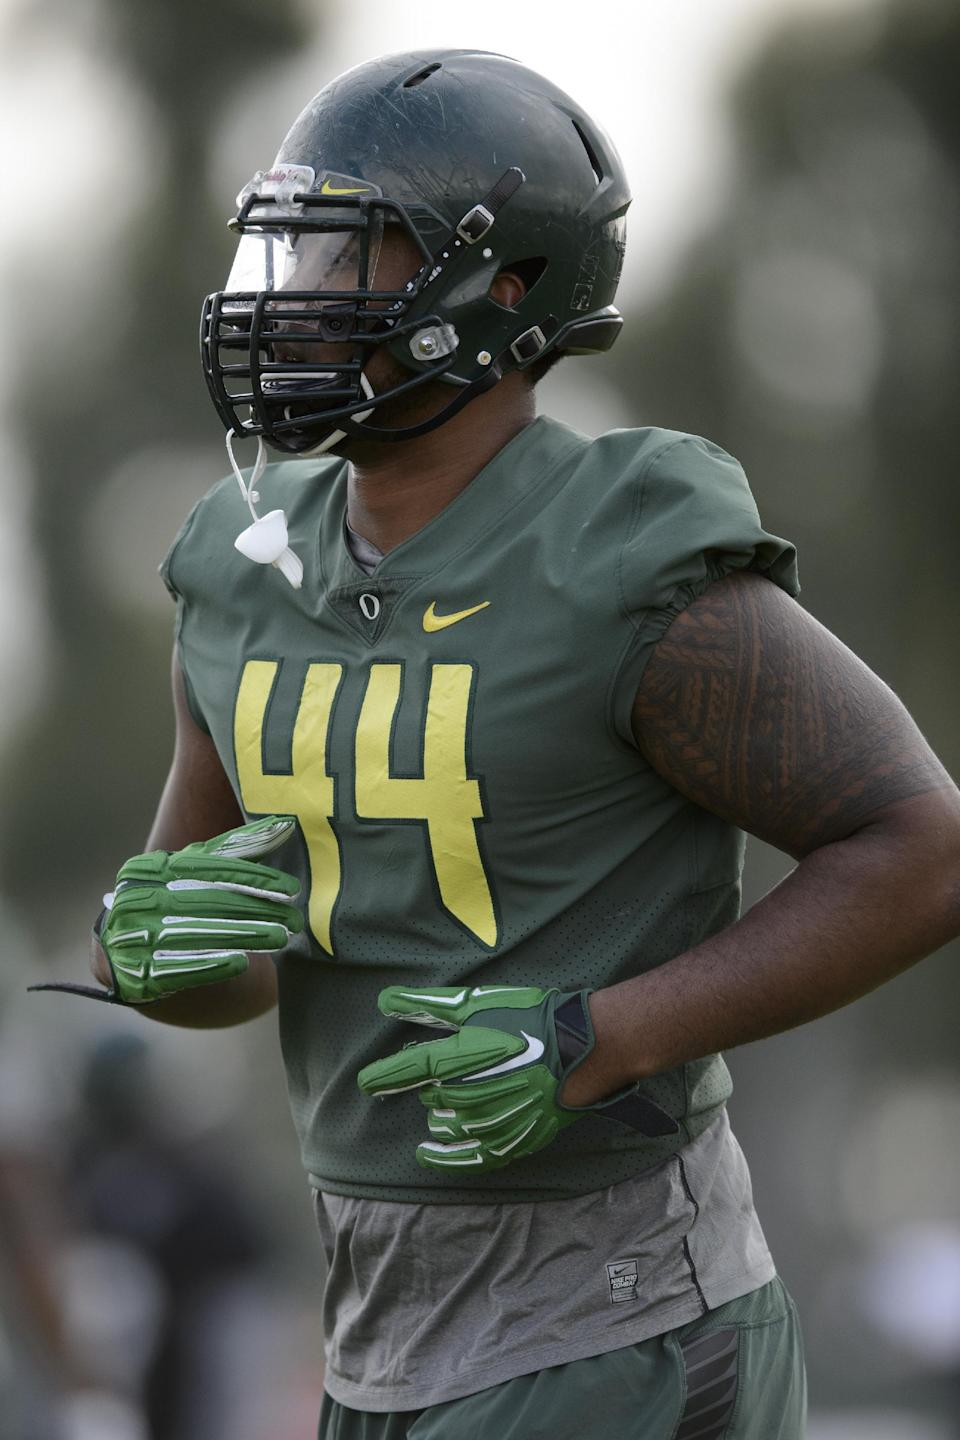 Oregon defensive lineman DeForest Buckner (44) jogs during NCAA college football practice in Carson, Calif., Tuesday, Dec. 30, 2014. Oregon is scheduled to play Florida State in the Rose Bowl NCAA college football playoff semifinal on New Year's Day. (AP Photo/Kelvin Kuo)